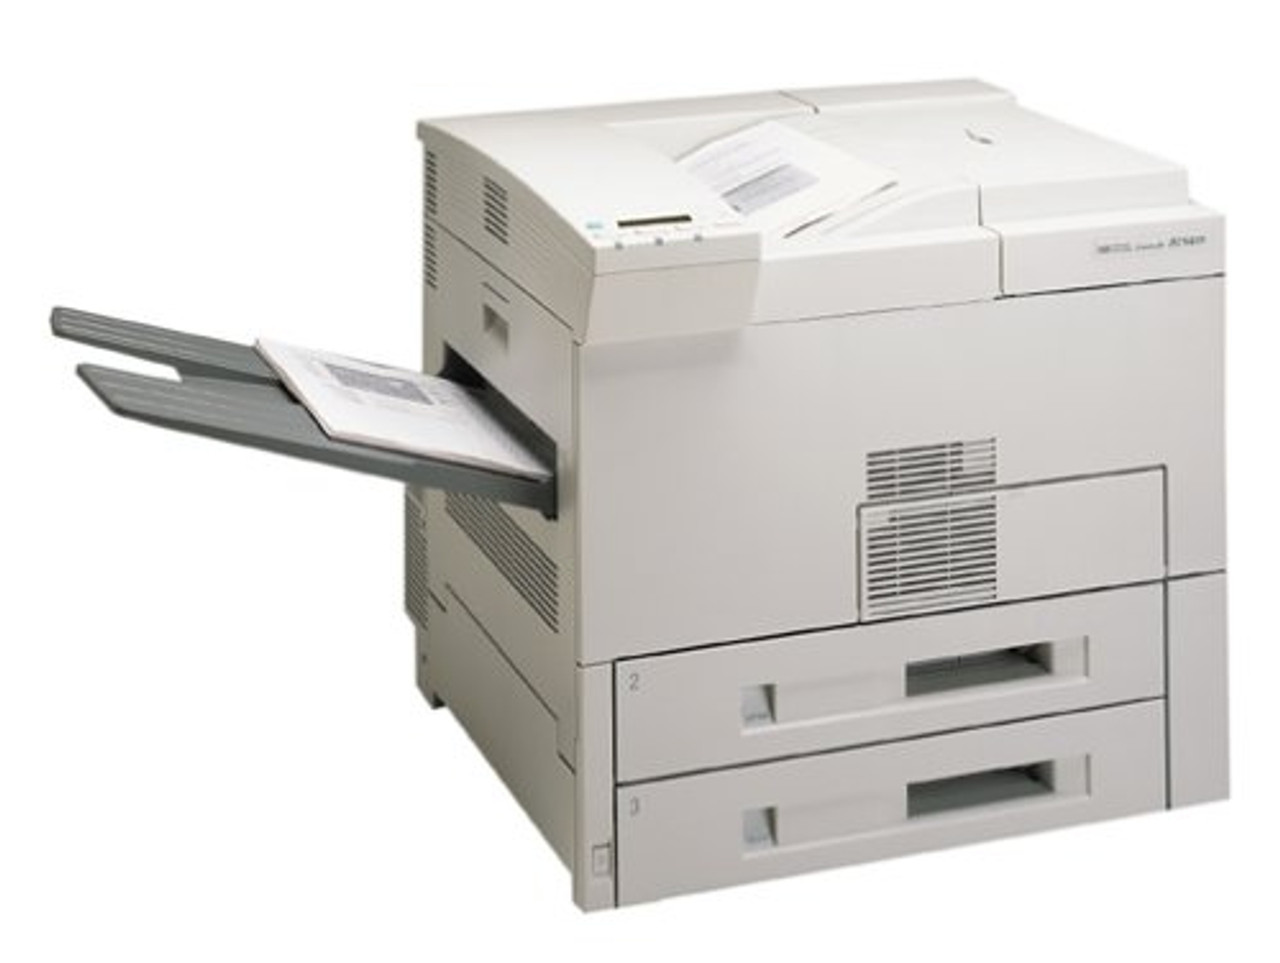 HP LaserJet 8000n - C4086A#ABA - HP 11x17 Laser Printer for sale